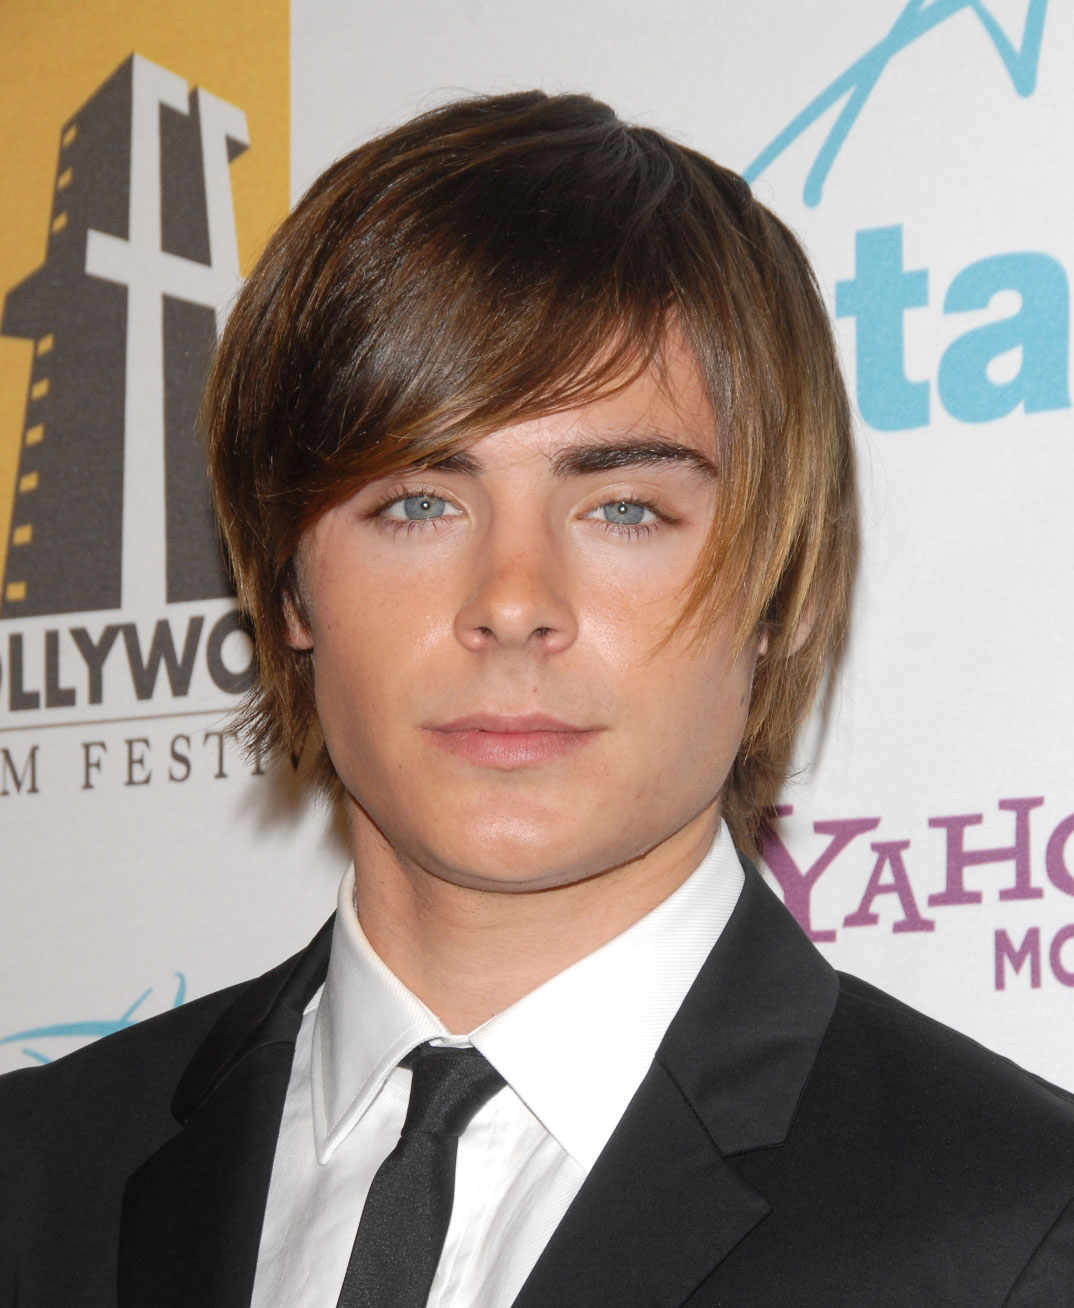 Justin Bieber Collection Zac Efron Hairstyles Are Becoming Popular